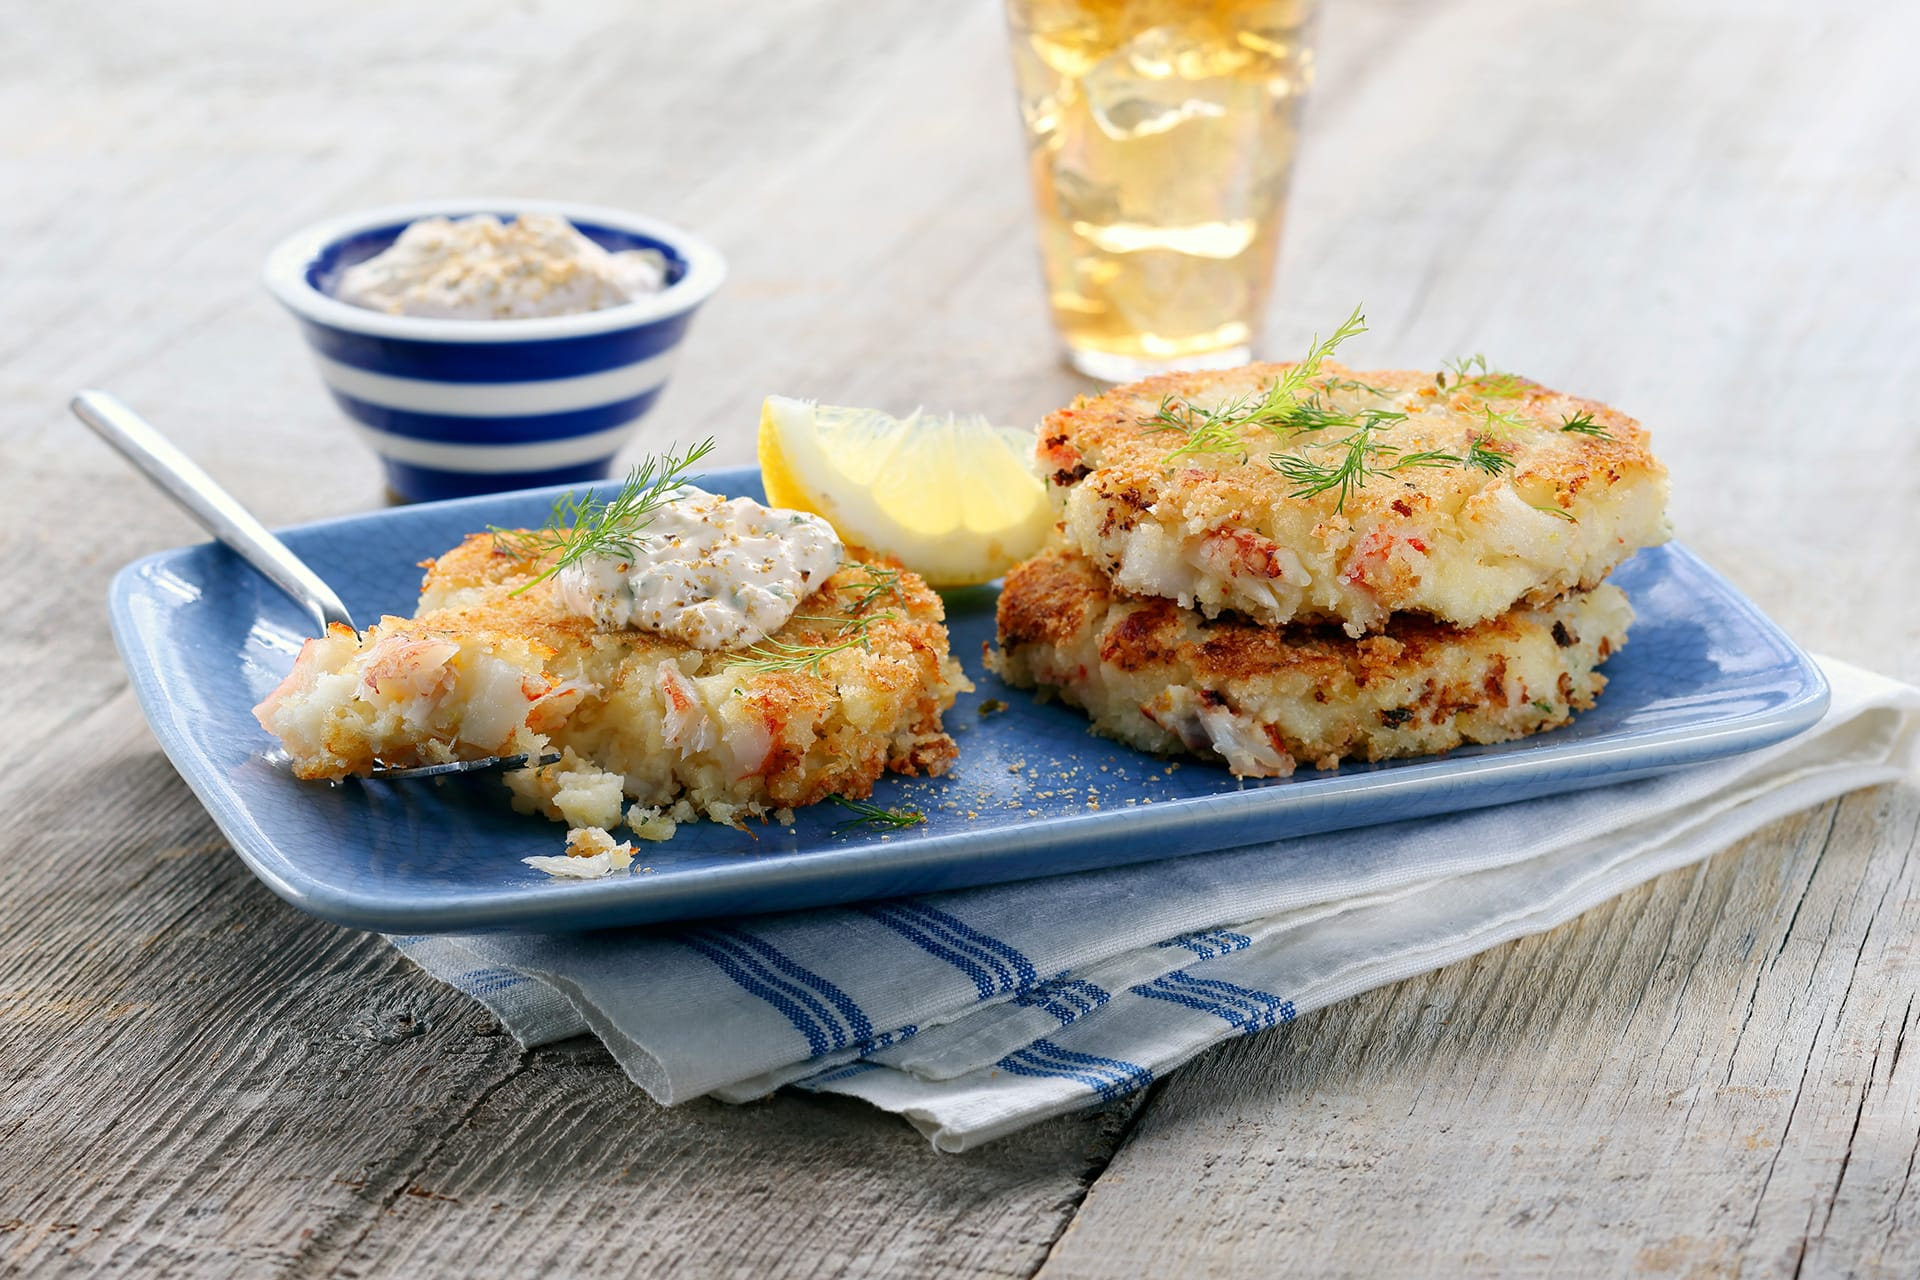 Mashed Potato Crab Cakes are easy to make at home.